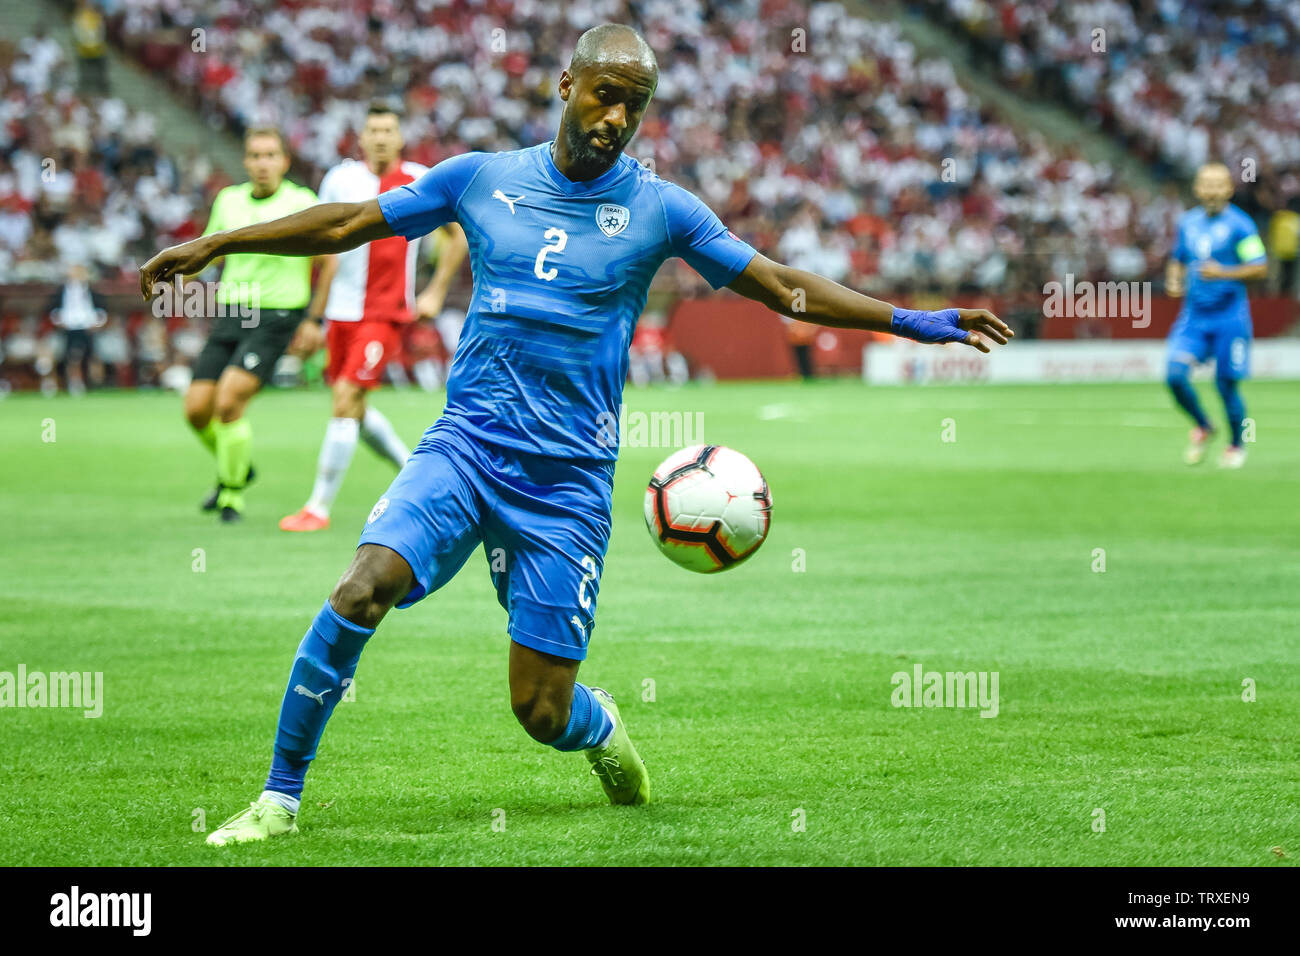 WARSAW, POLAND - JUNE 10, 2019: Qualifications Euro 2020  match Poland - Israel 4:0. In action Eli Dasa. - Stock Image